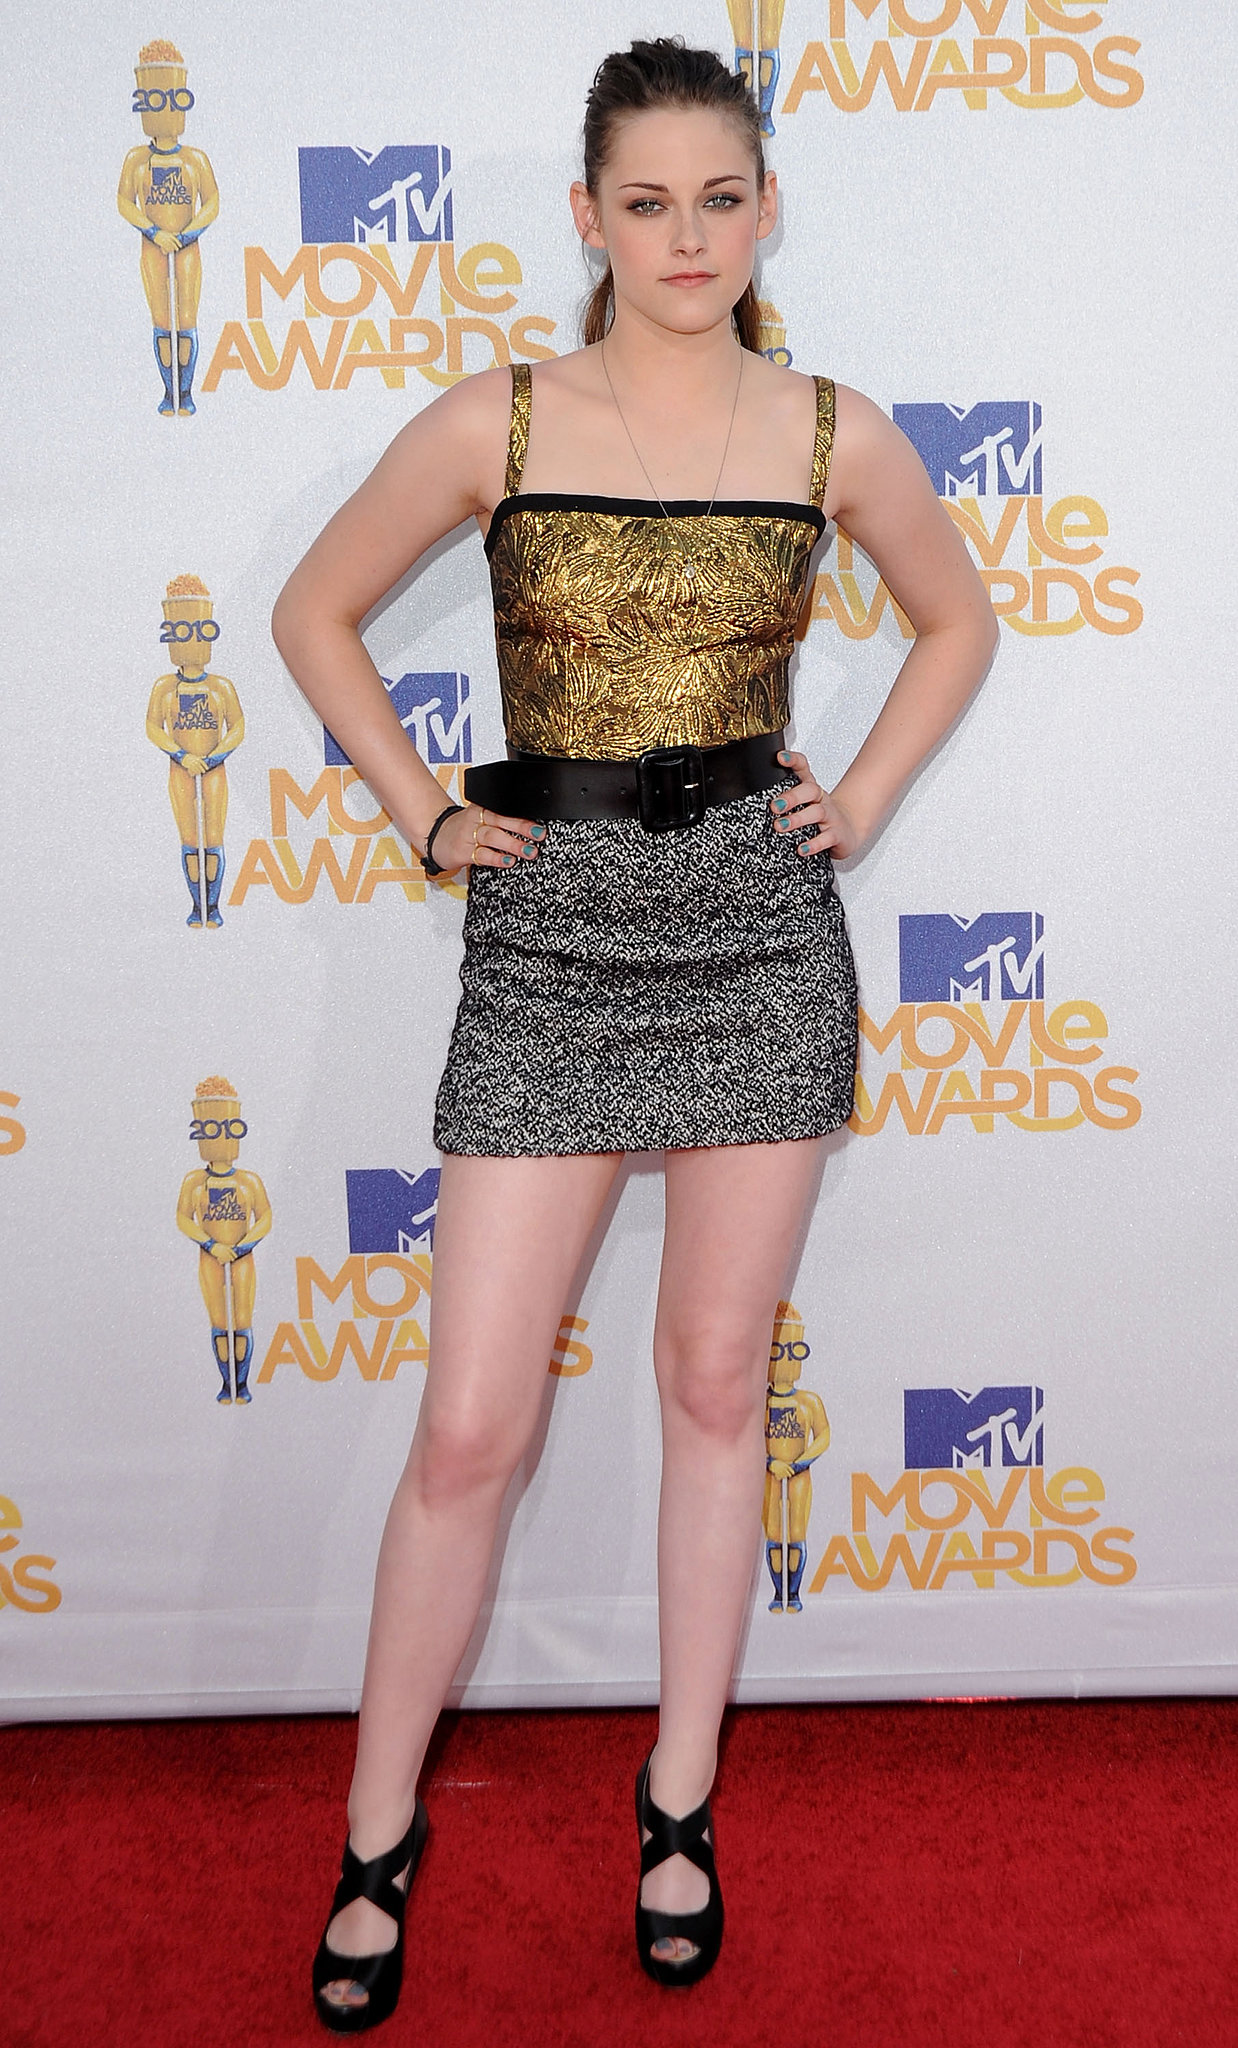 For the 2010 MTV Movie Awards, the actress styled a sassy gold and black Dolce & Gabbana mini with crisscross black sandals for a uniquely glam look.